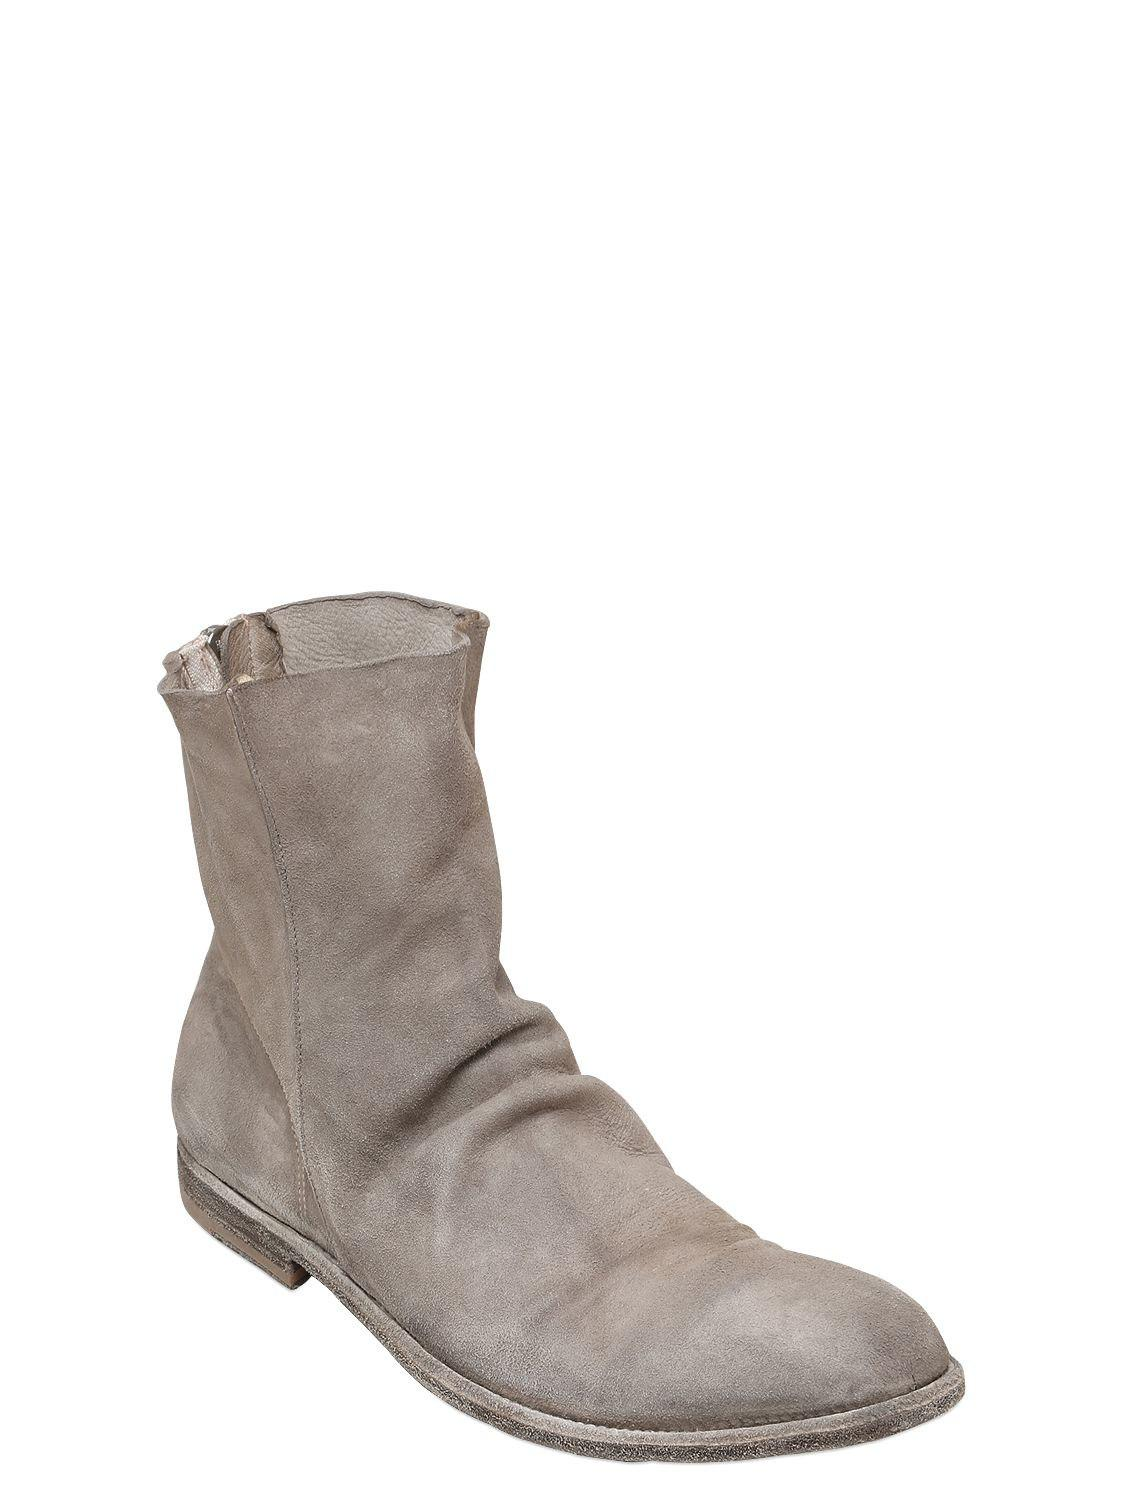 4d8048c2af94d Lyst - Officine Creative Washed Deerskin Leather Cropped Boots in Gray for  Men - Save 30%